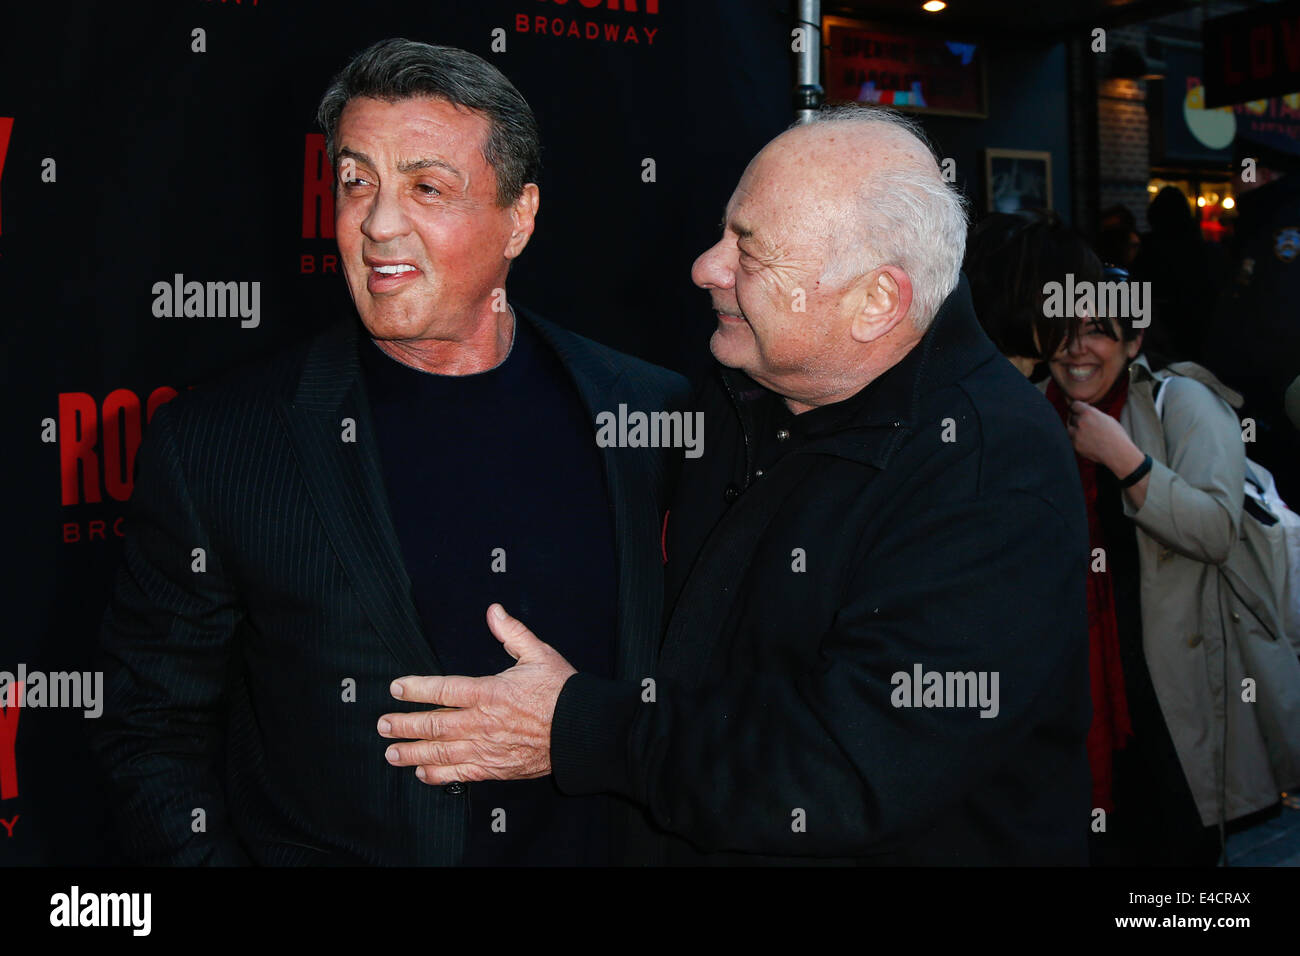 Actors Sylvester Stallone (L) and Burt Young attend the 'Rocky' Broadway opening night at the Winter Garden - Stock Image